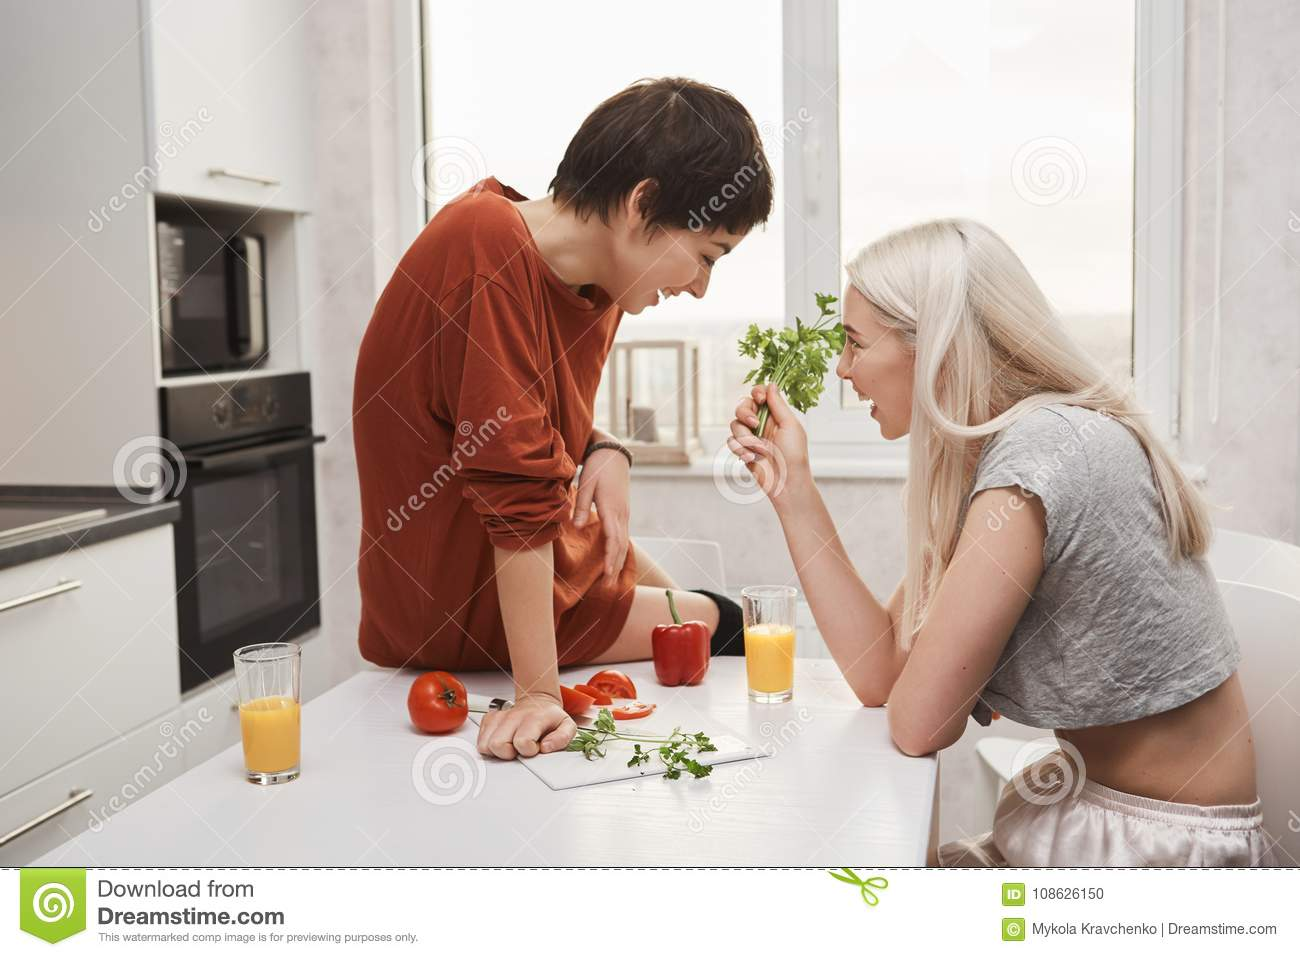 Portrait of cute blonde girl holding salary and talking to her girlfriend while she sits on kitchen table and laughs